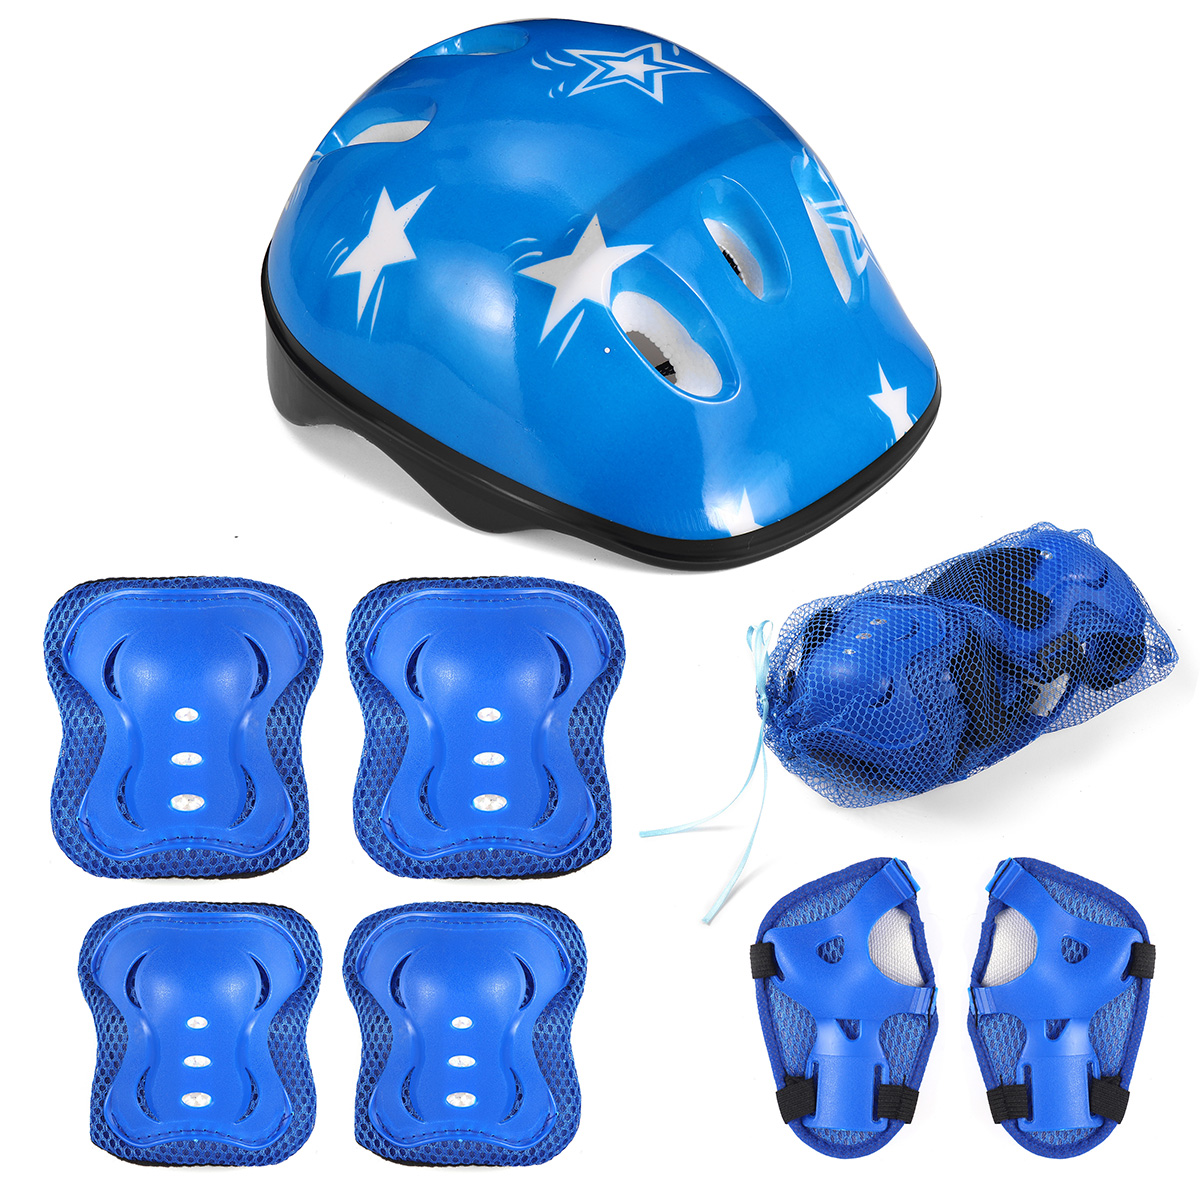 7Pcs Elbow Knee Wrist Protective Guard Elbow Pads Safety Gear Pad Wrist Guard Skateboard Protective Gear Kids Christmas Gifts